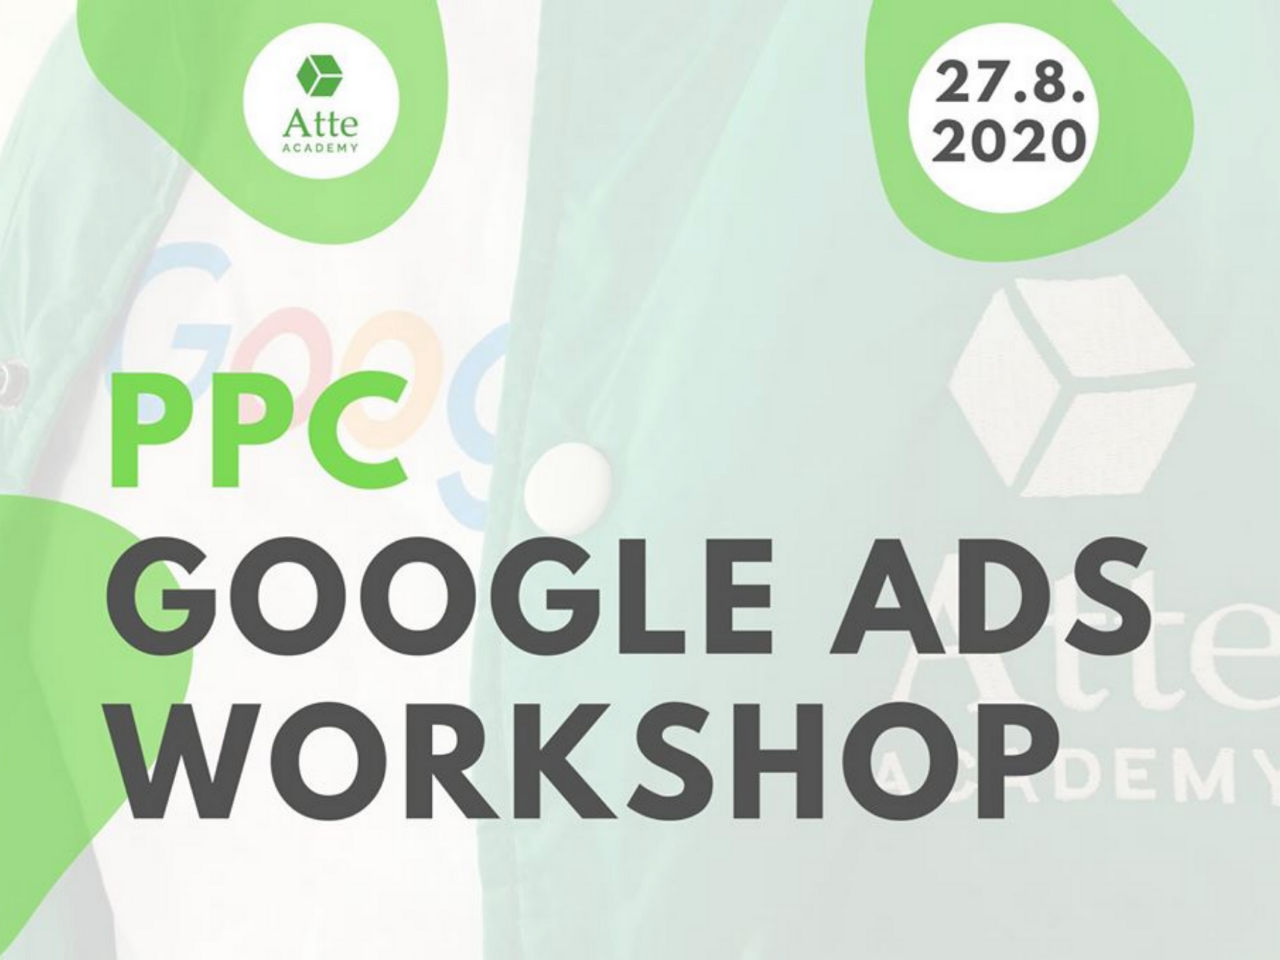 PPC Google Ads Workshop